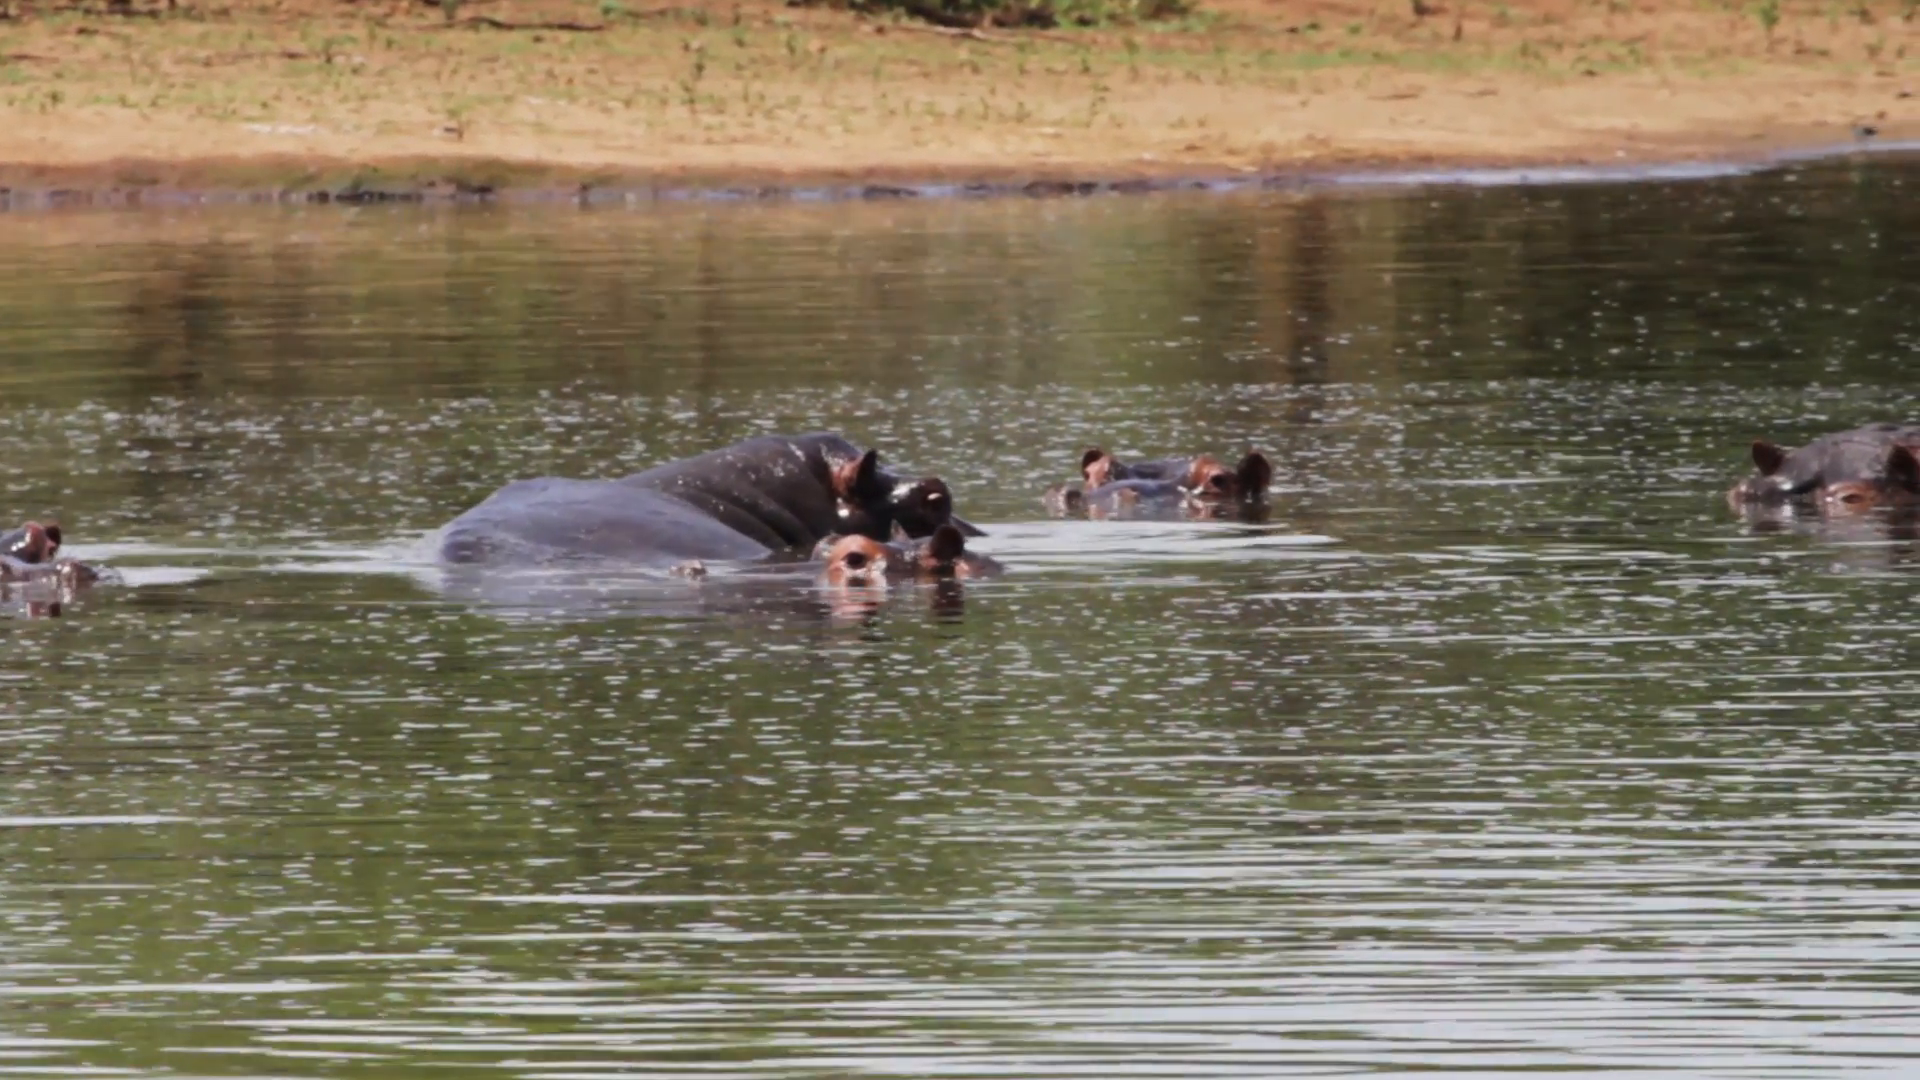 Hippos in water photo